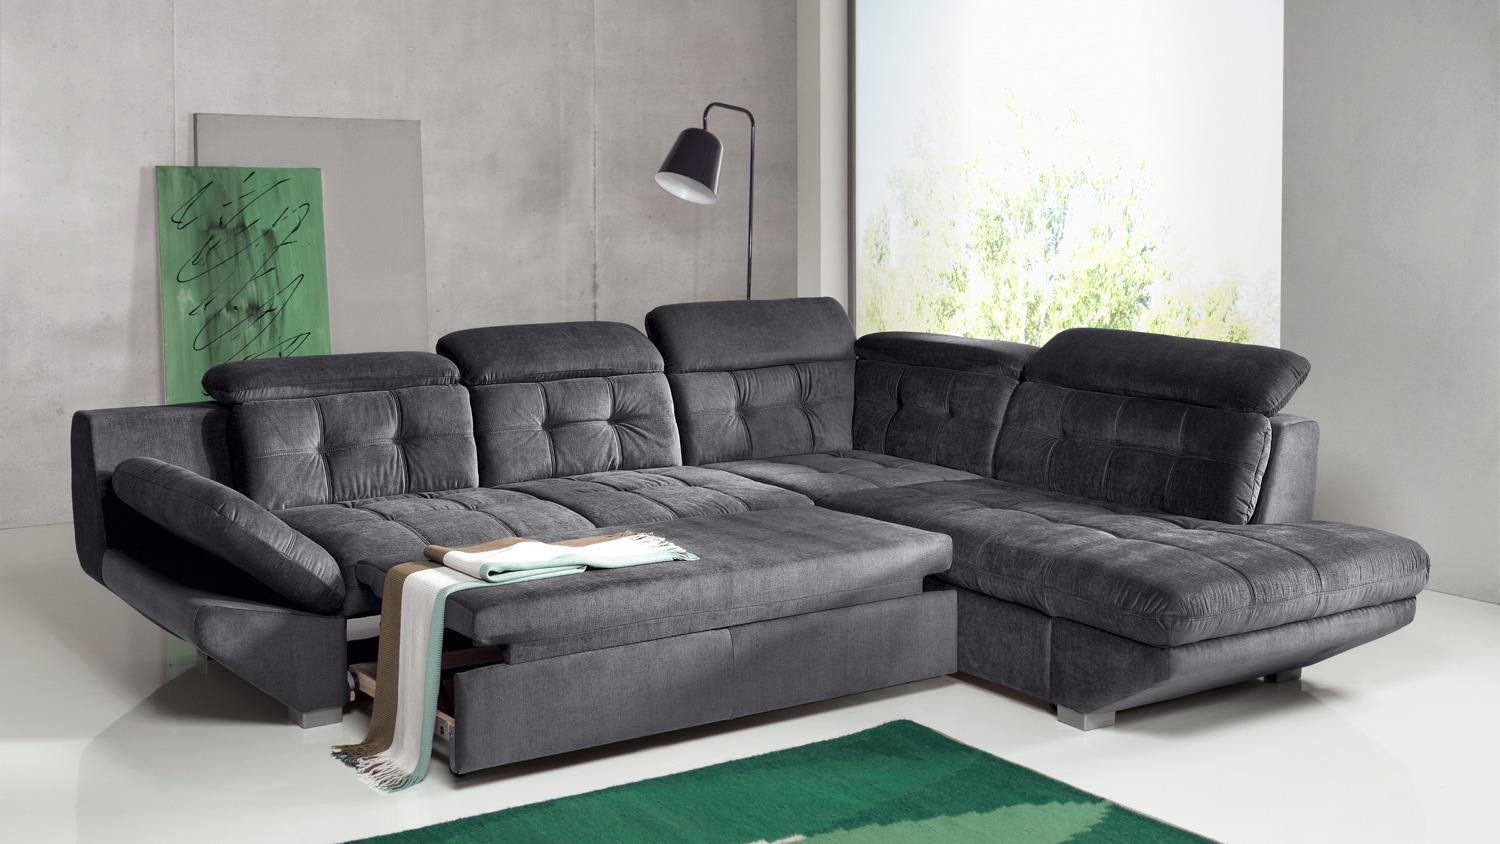 Ledercouch anthrazit  ETERNITY Sofa in Anthrazit mit Bettfunktion